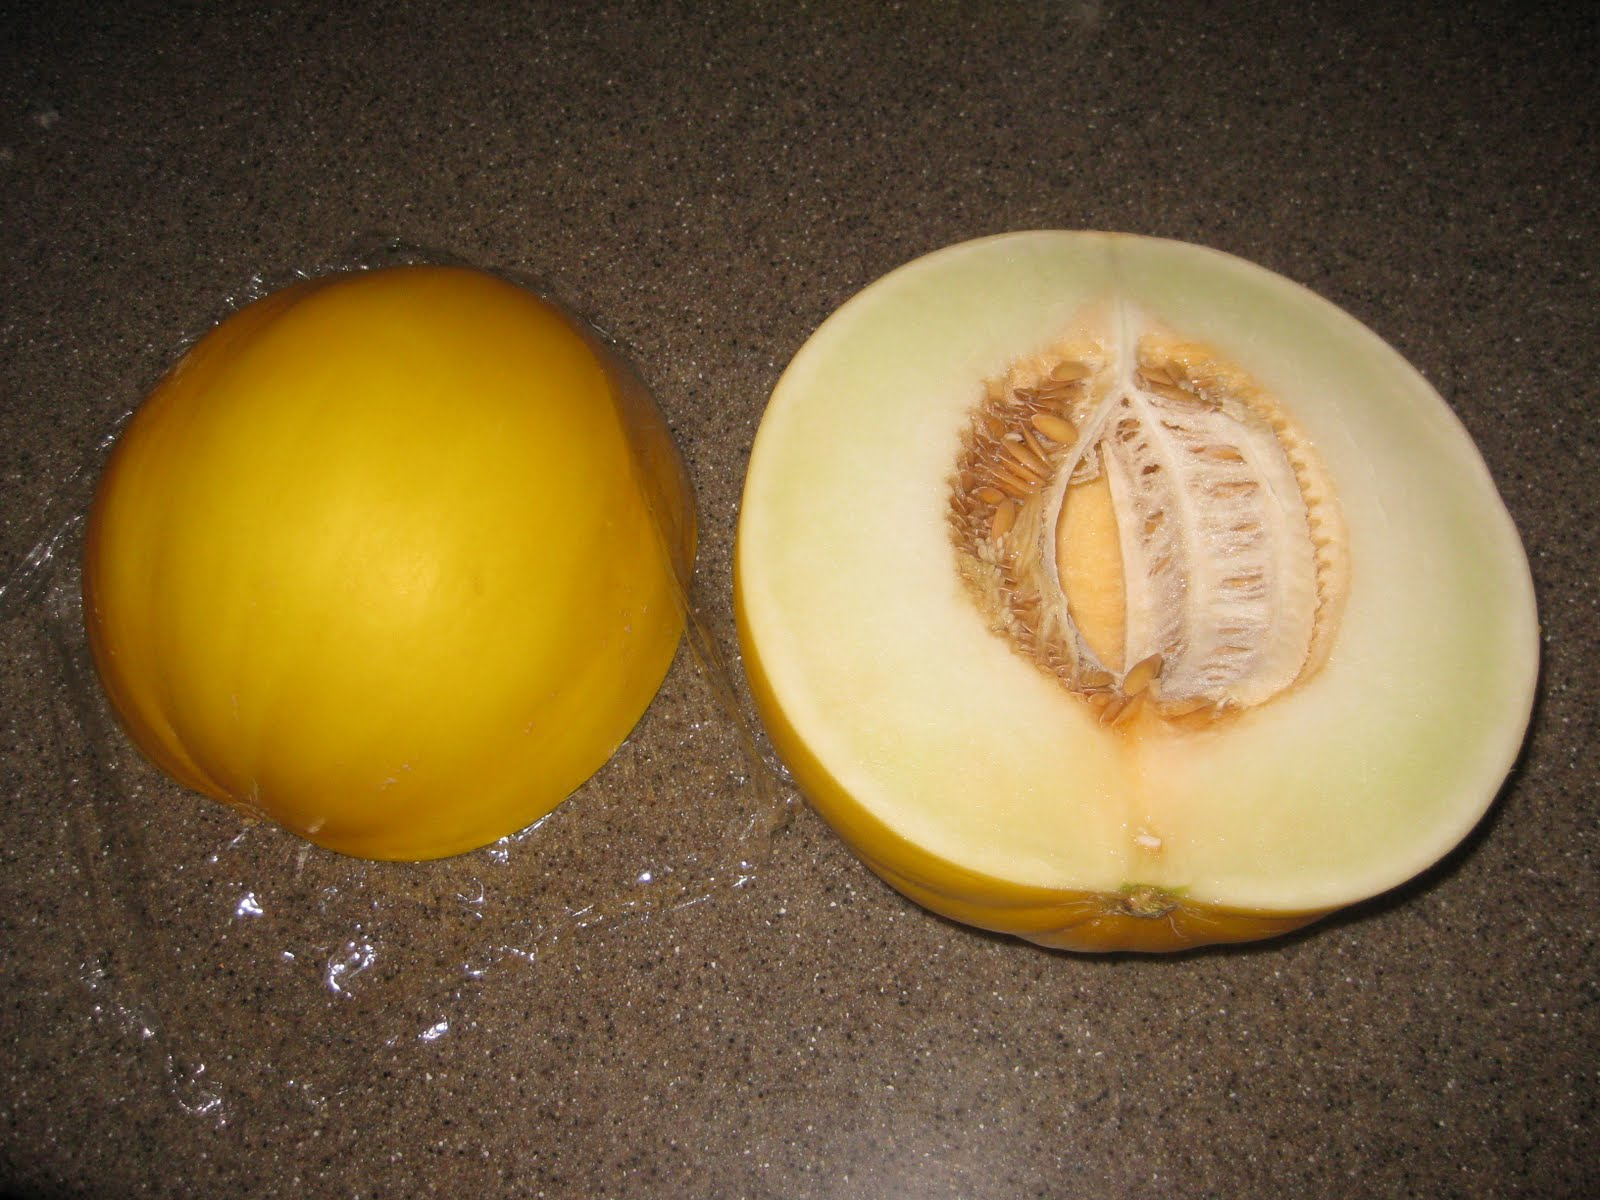 golden delicious melon